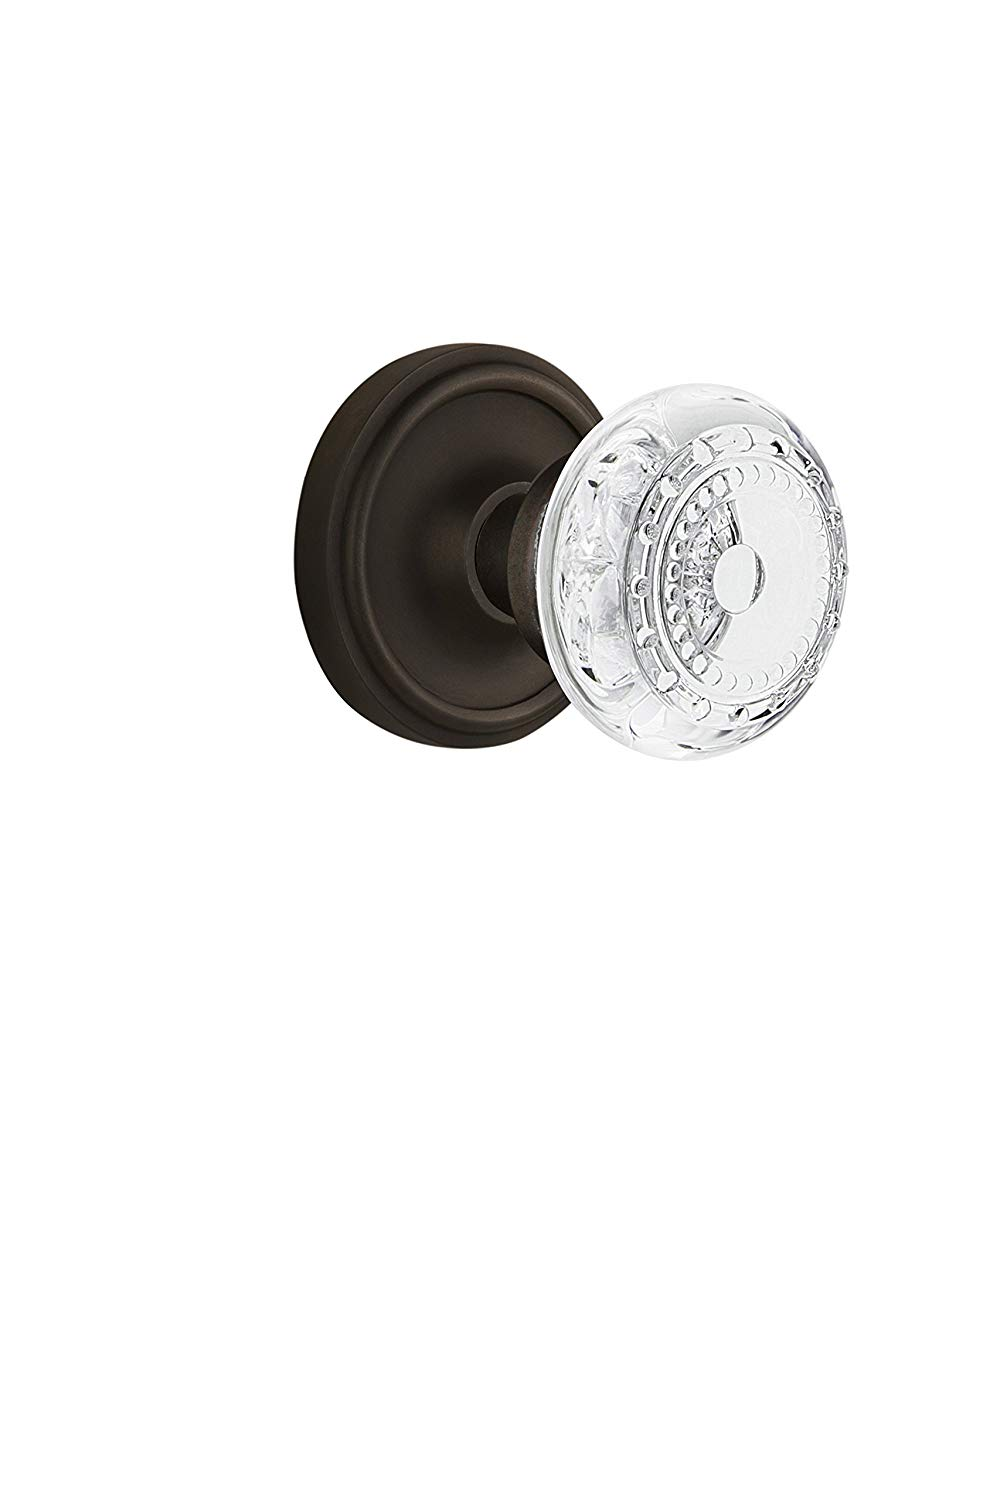 """Nostalgic Warehouse 751855 Classic Rosette Privacy Crystal Meadows Door Knob, Backset Size: 2.75"""", Oil-Rubbed Bronze"""